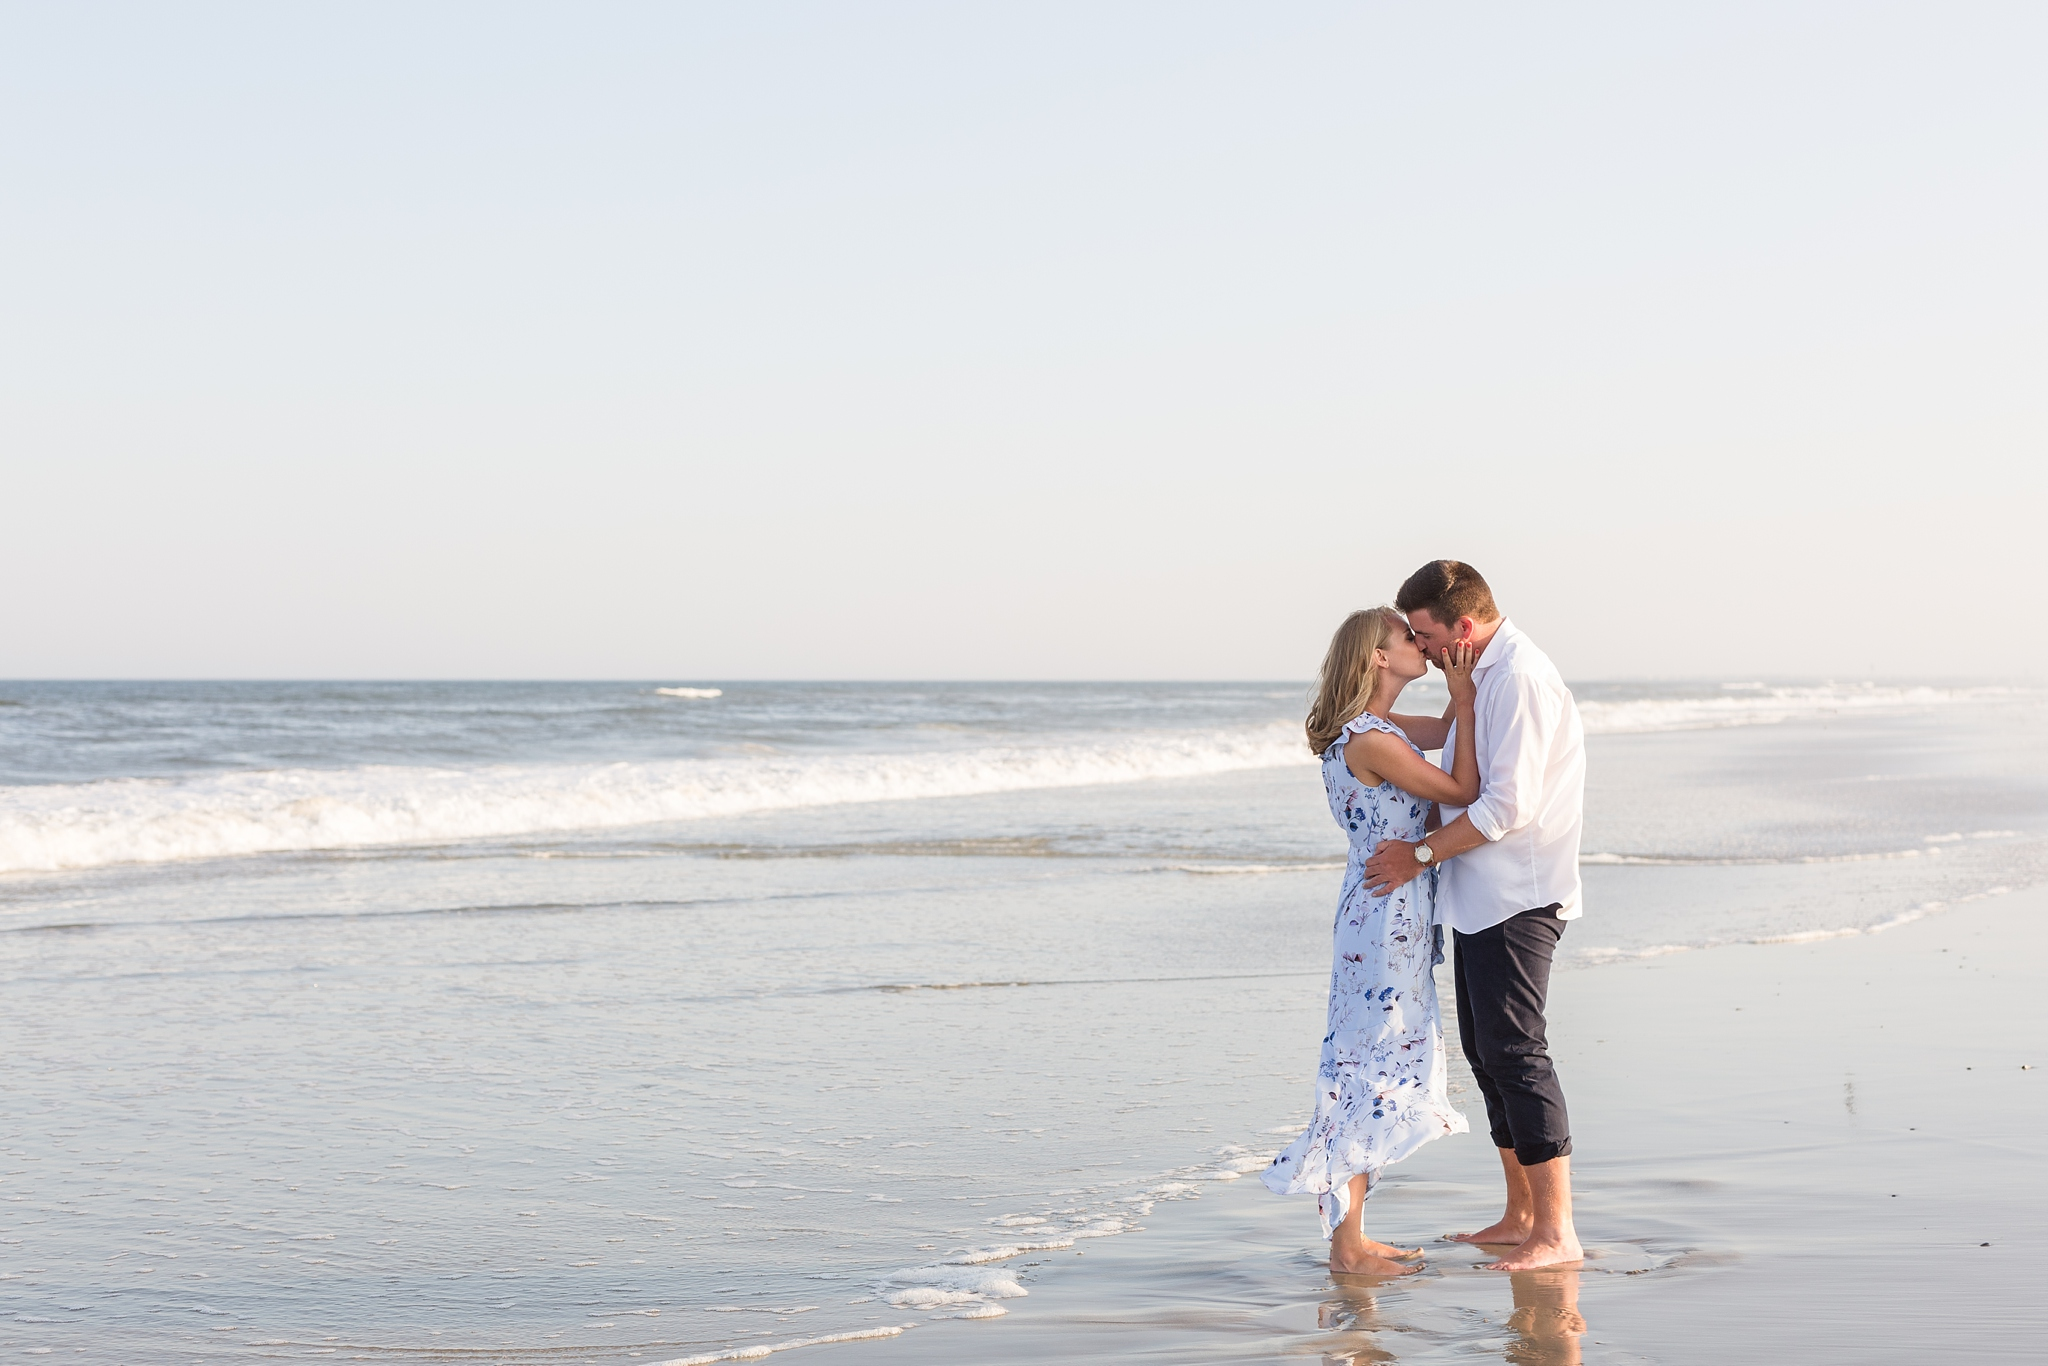 Sea_Isle_City_NJ_Beach_Engagement_Session_06.jpg